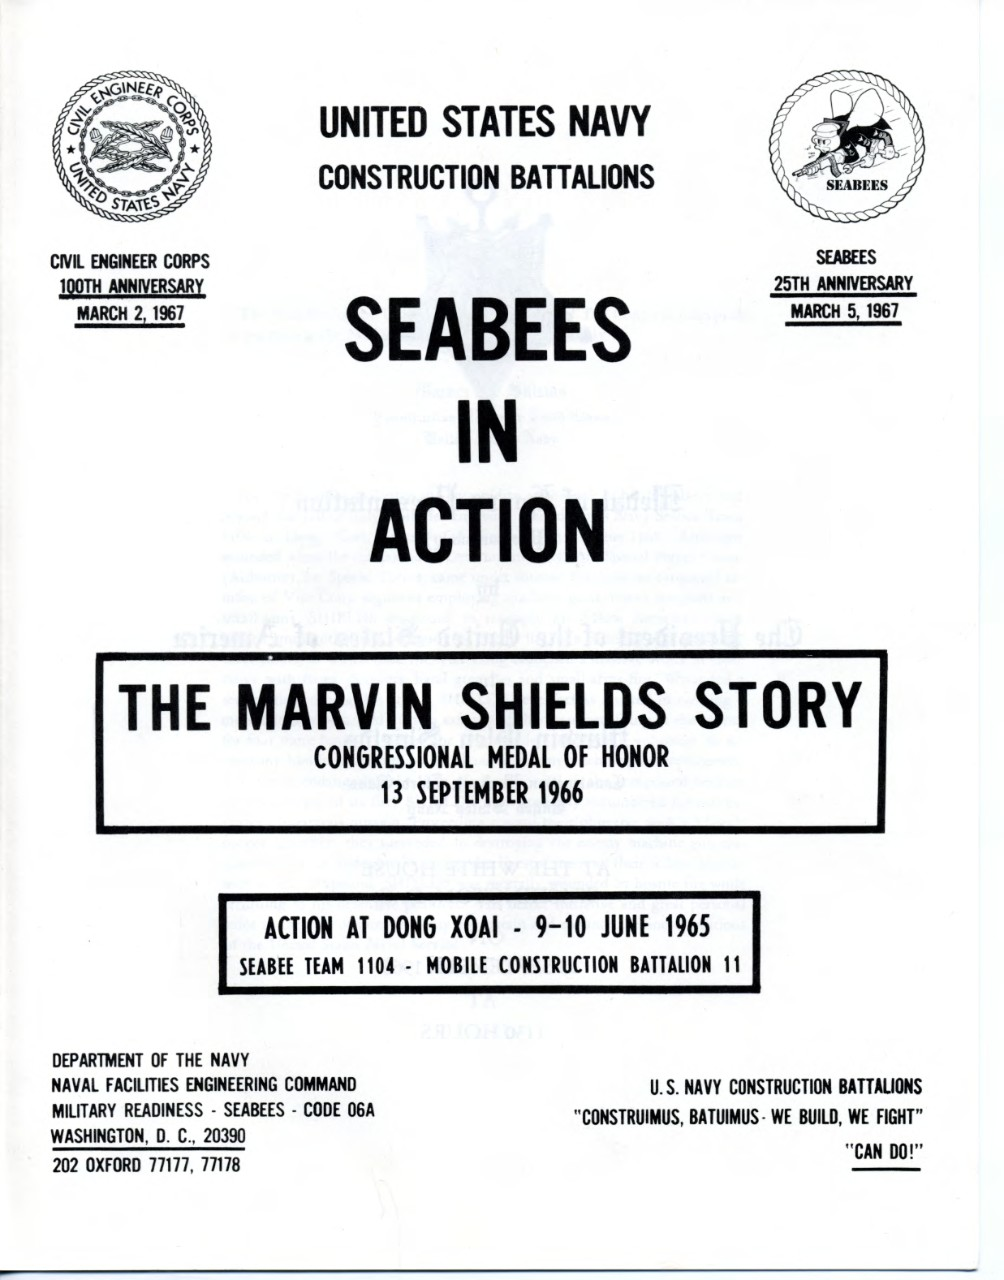 Seabees in Action Marvin Shields image